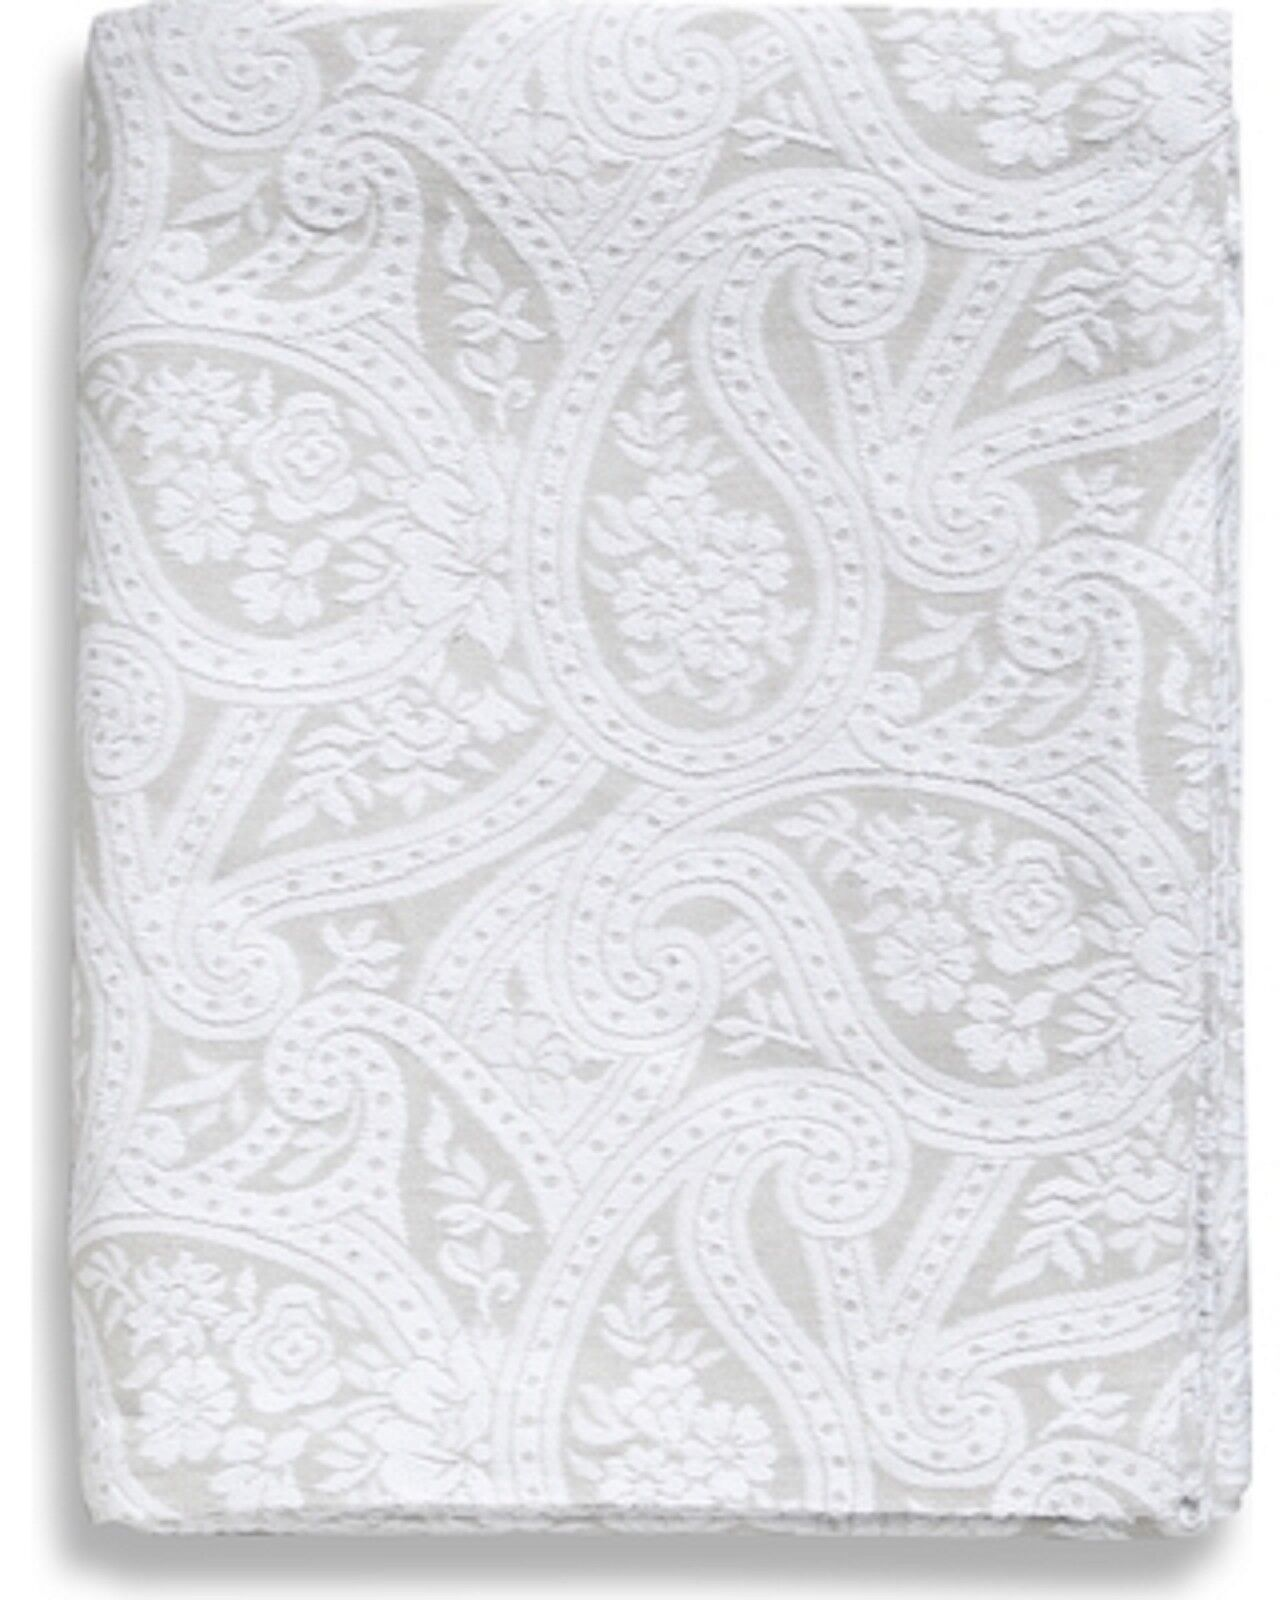 kashmir paisley coverlet grey white queen